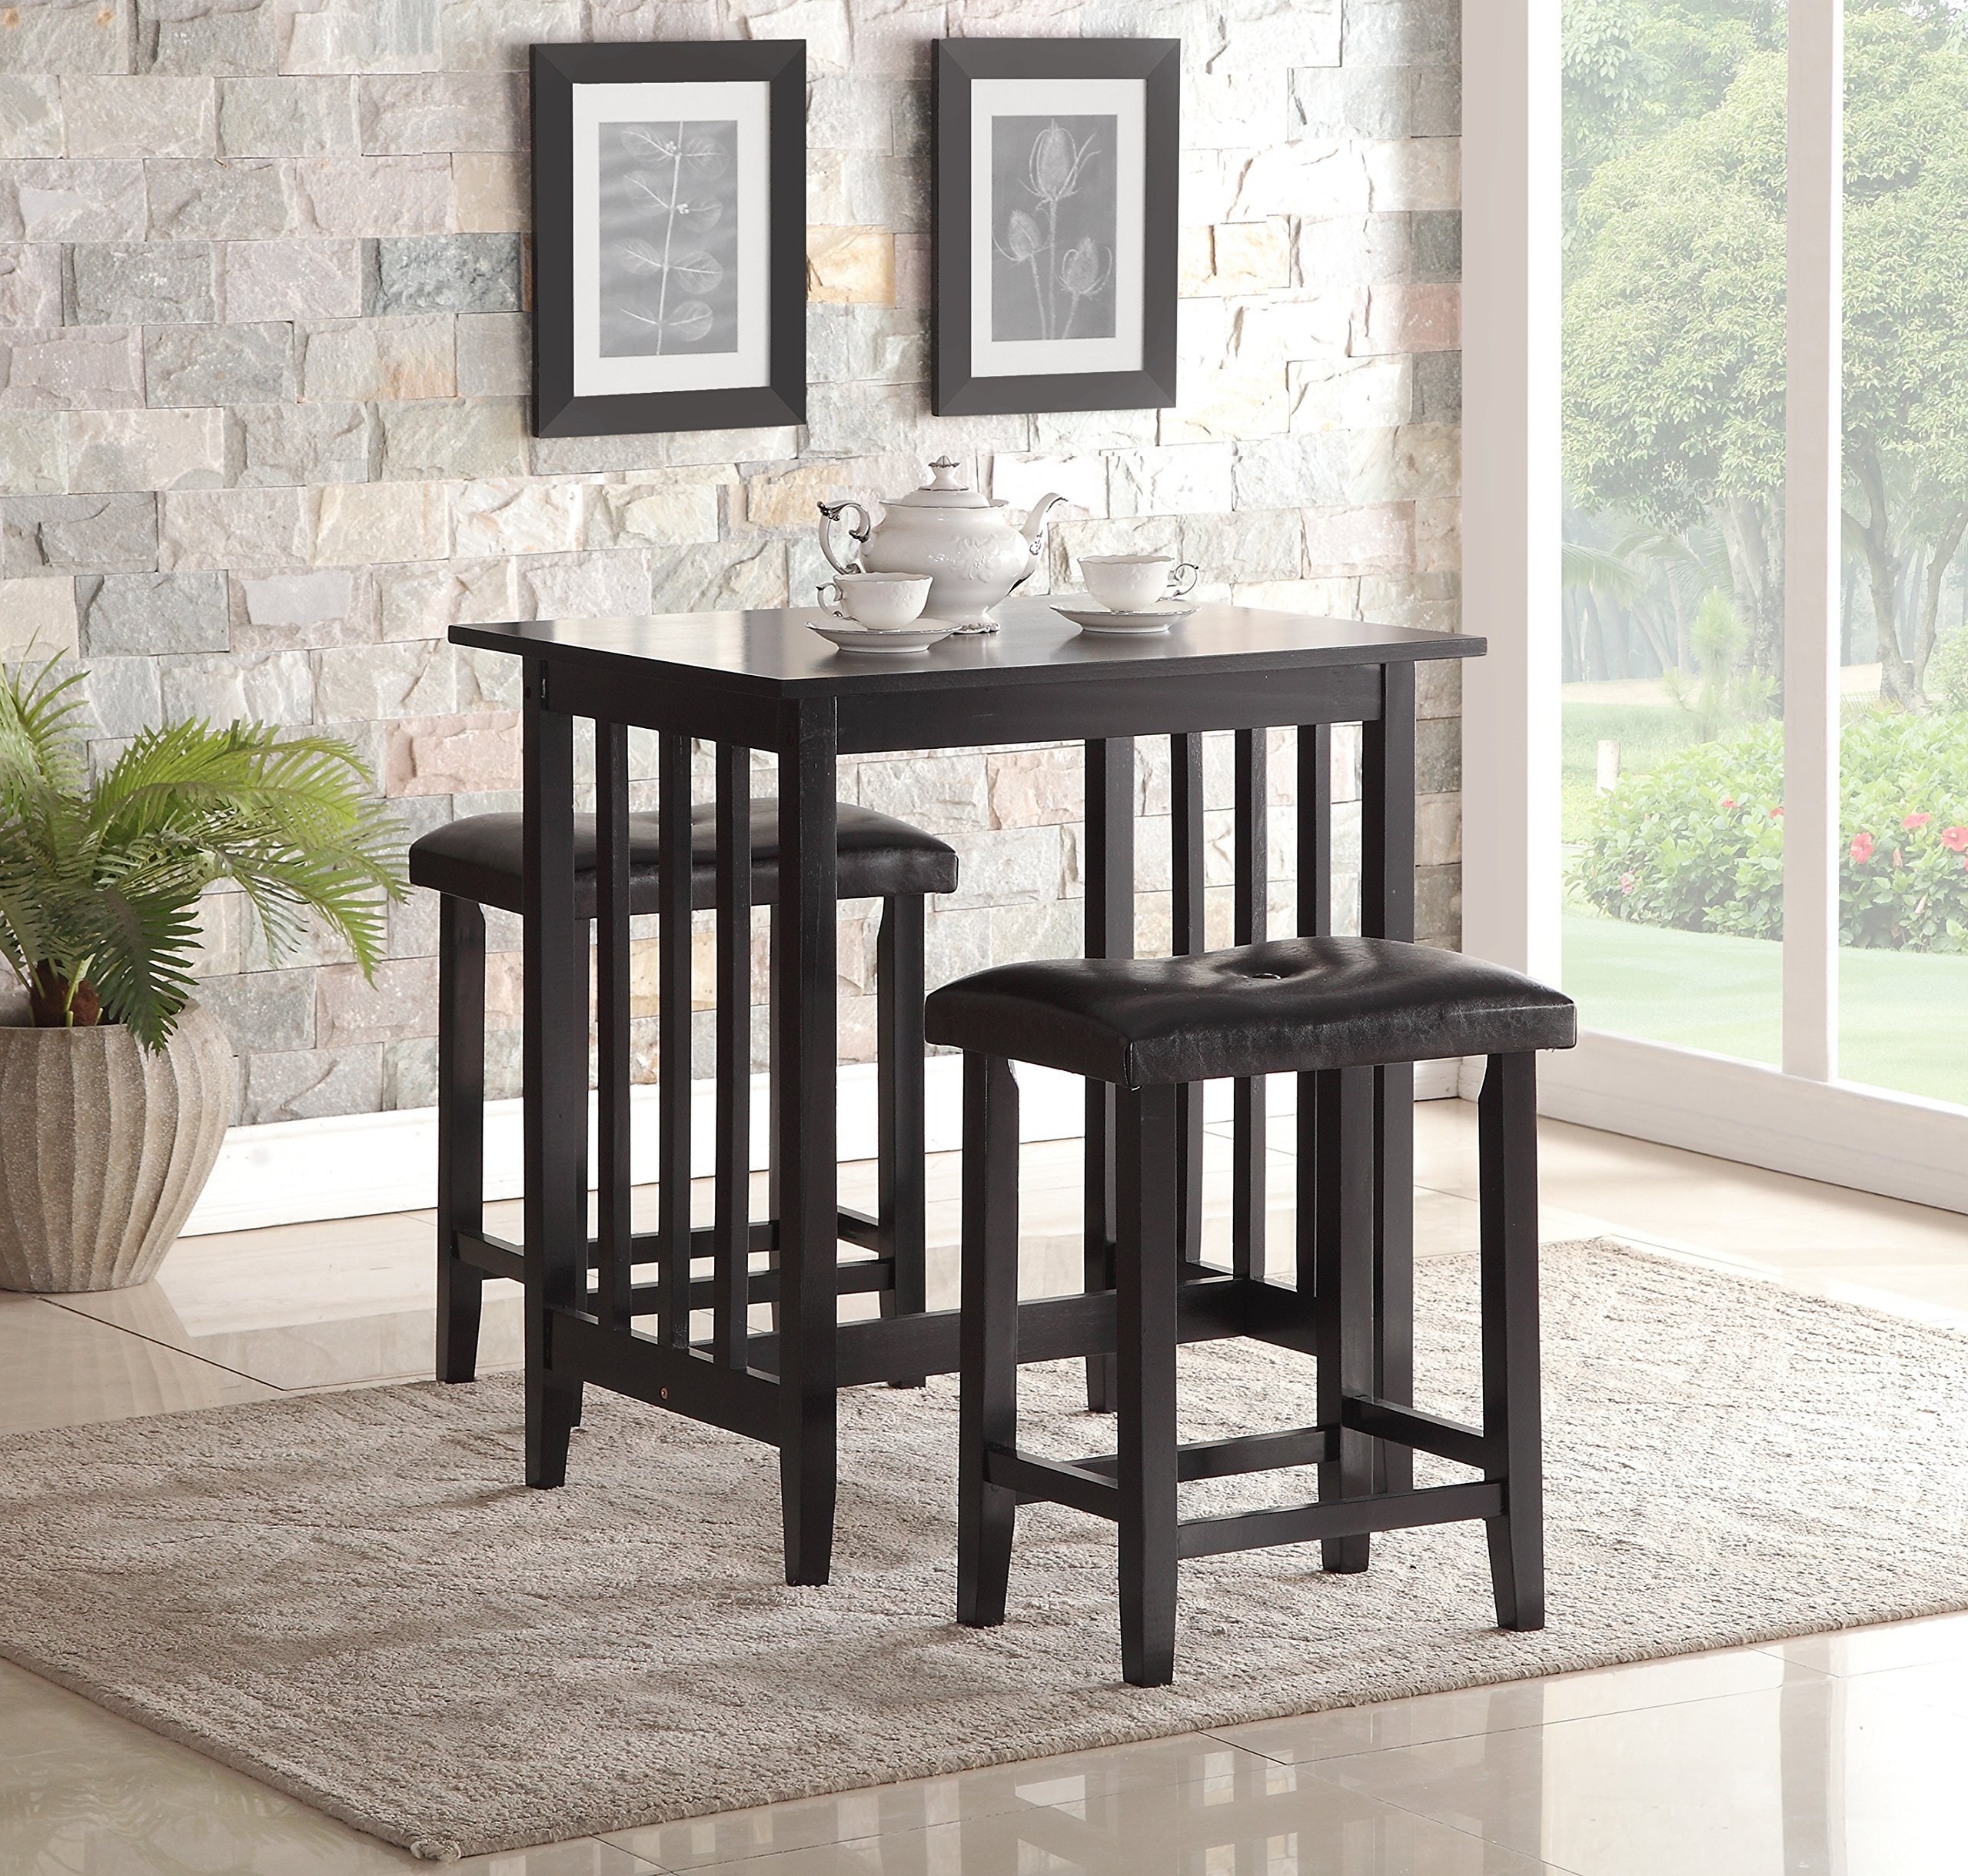 Roundhill Furniture 3-Piece Counter Height Dining Set with Saddleback Stools, Black by Roundhill Furniture